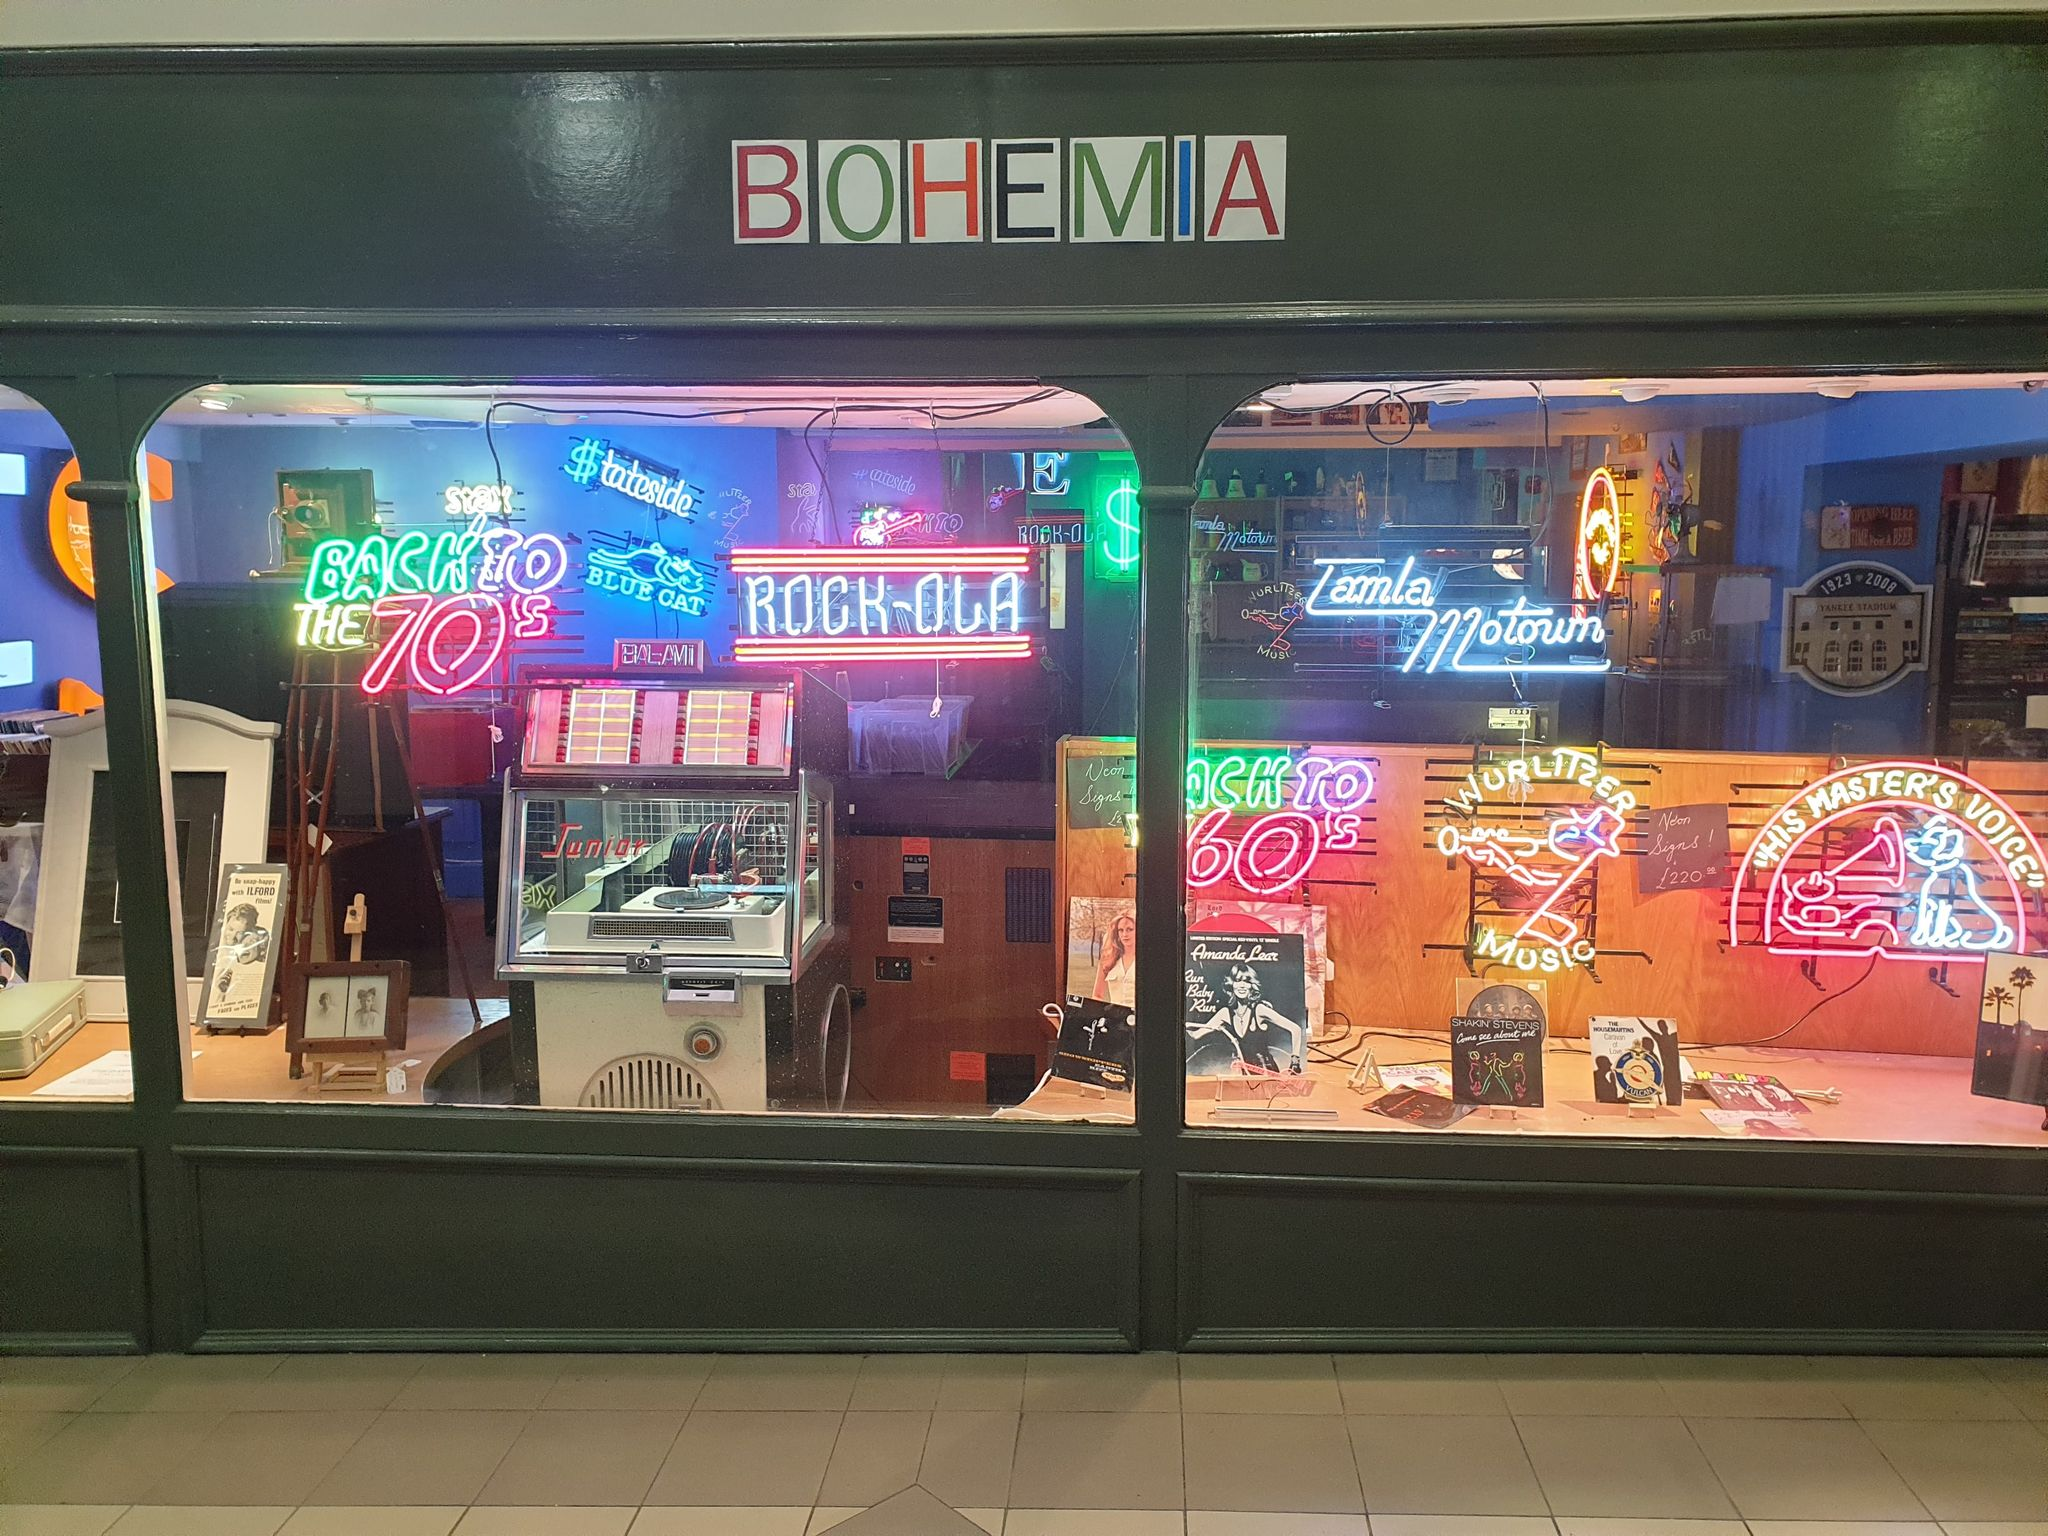 The new Bohemia shop, incorporating The Jukebox Joint, has opened in Cambridge Walks in Southport town centre